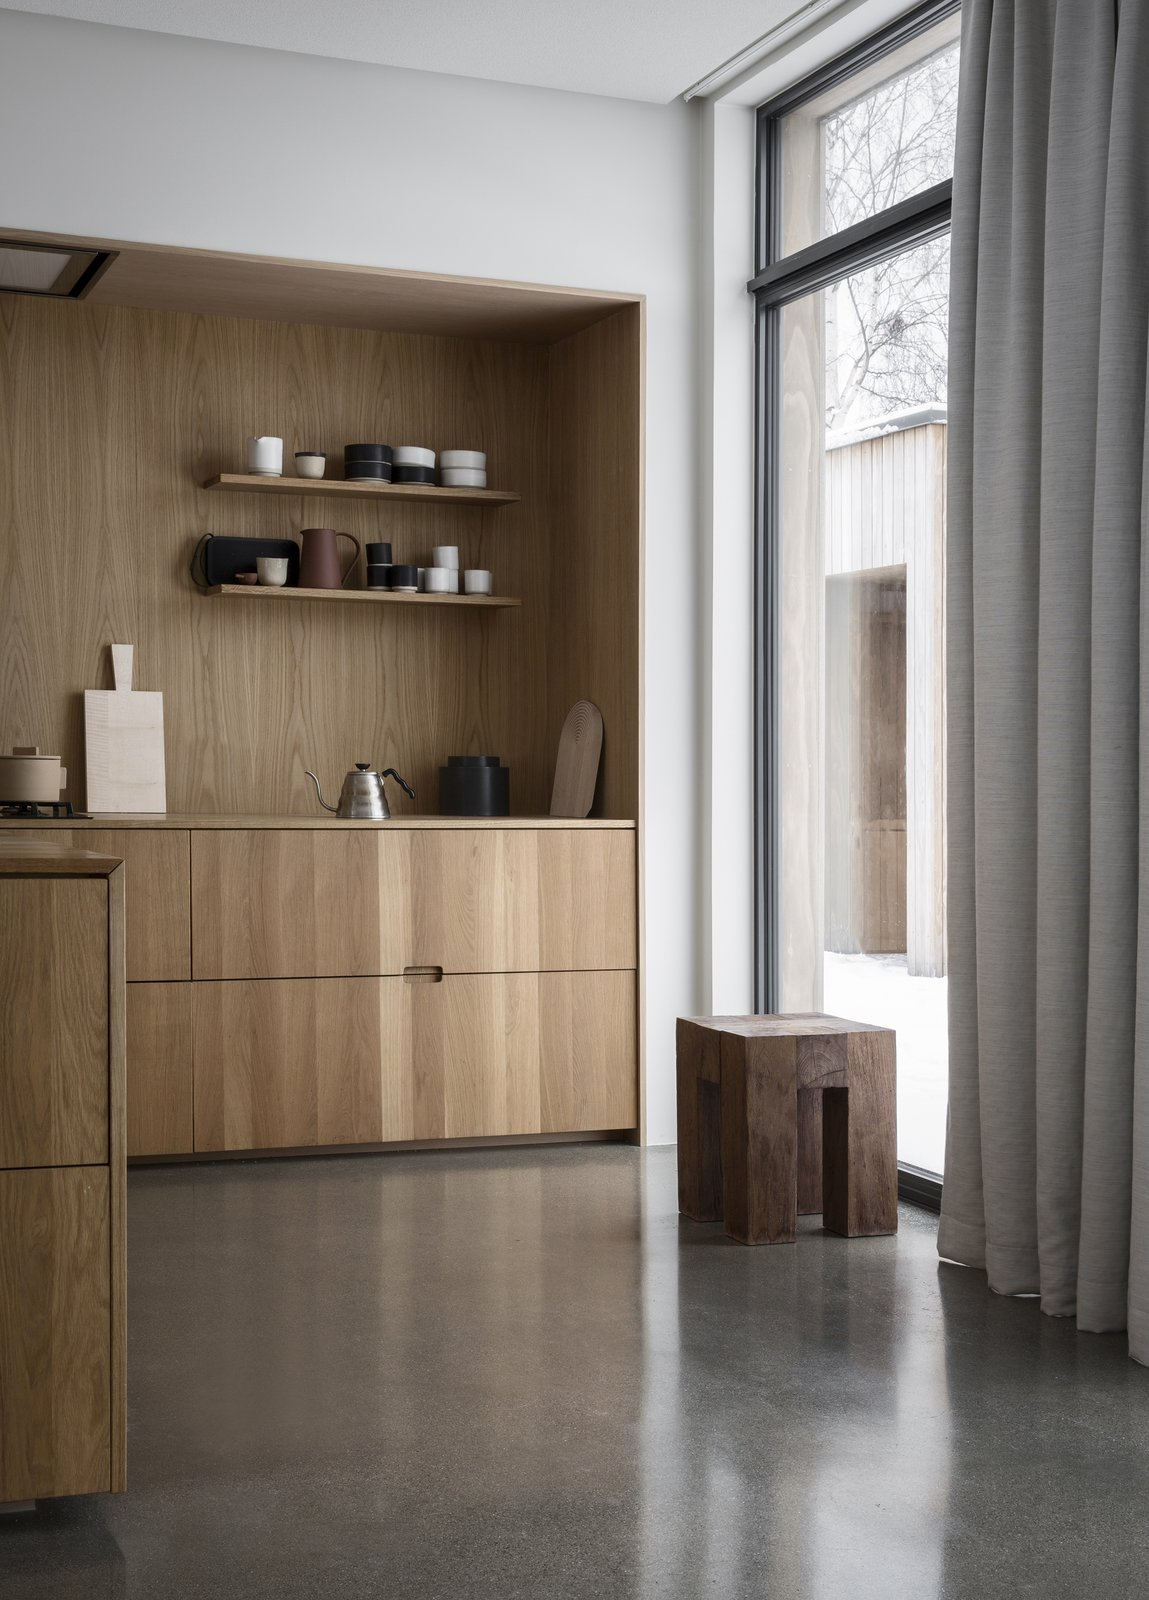 Kitchen, Concrete, Wood, Wood, Range, Open, and Wood  Best Kitchen Concrete Wood Photos from A Cubic Dwelling in Norway Just Oozes Hygge